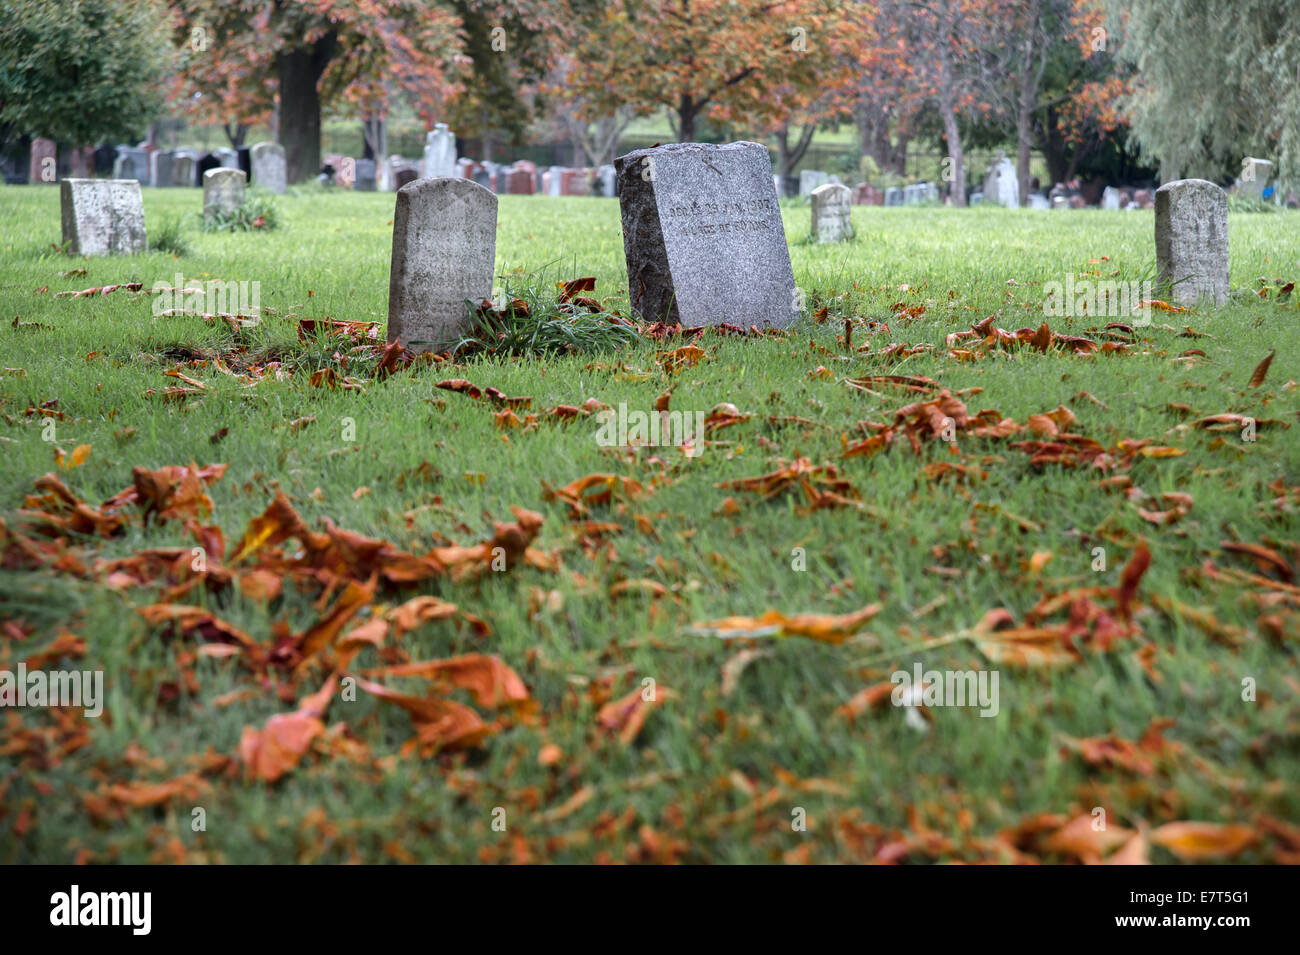 Tombstones on a graveyard in Fall - Stock Image